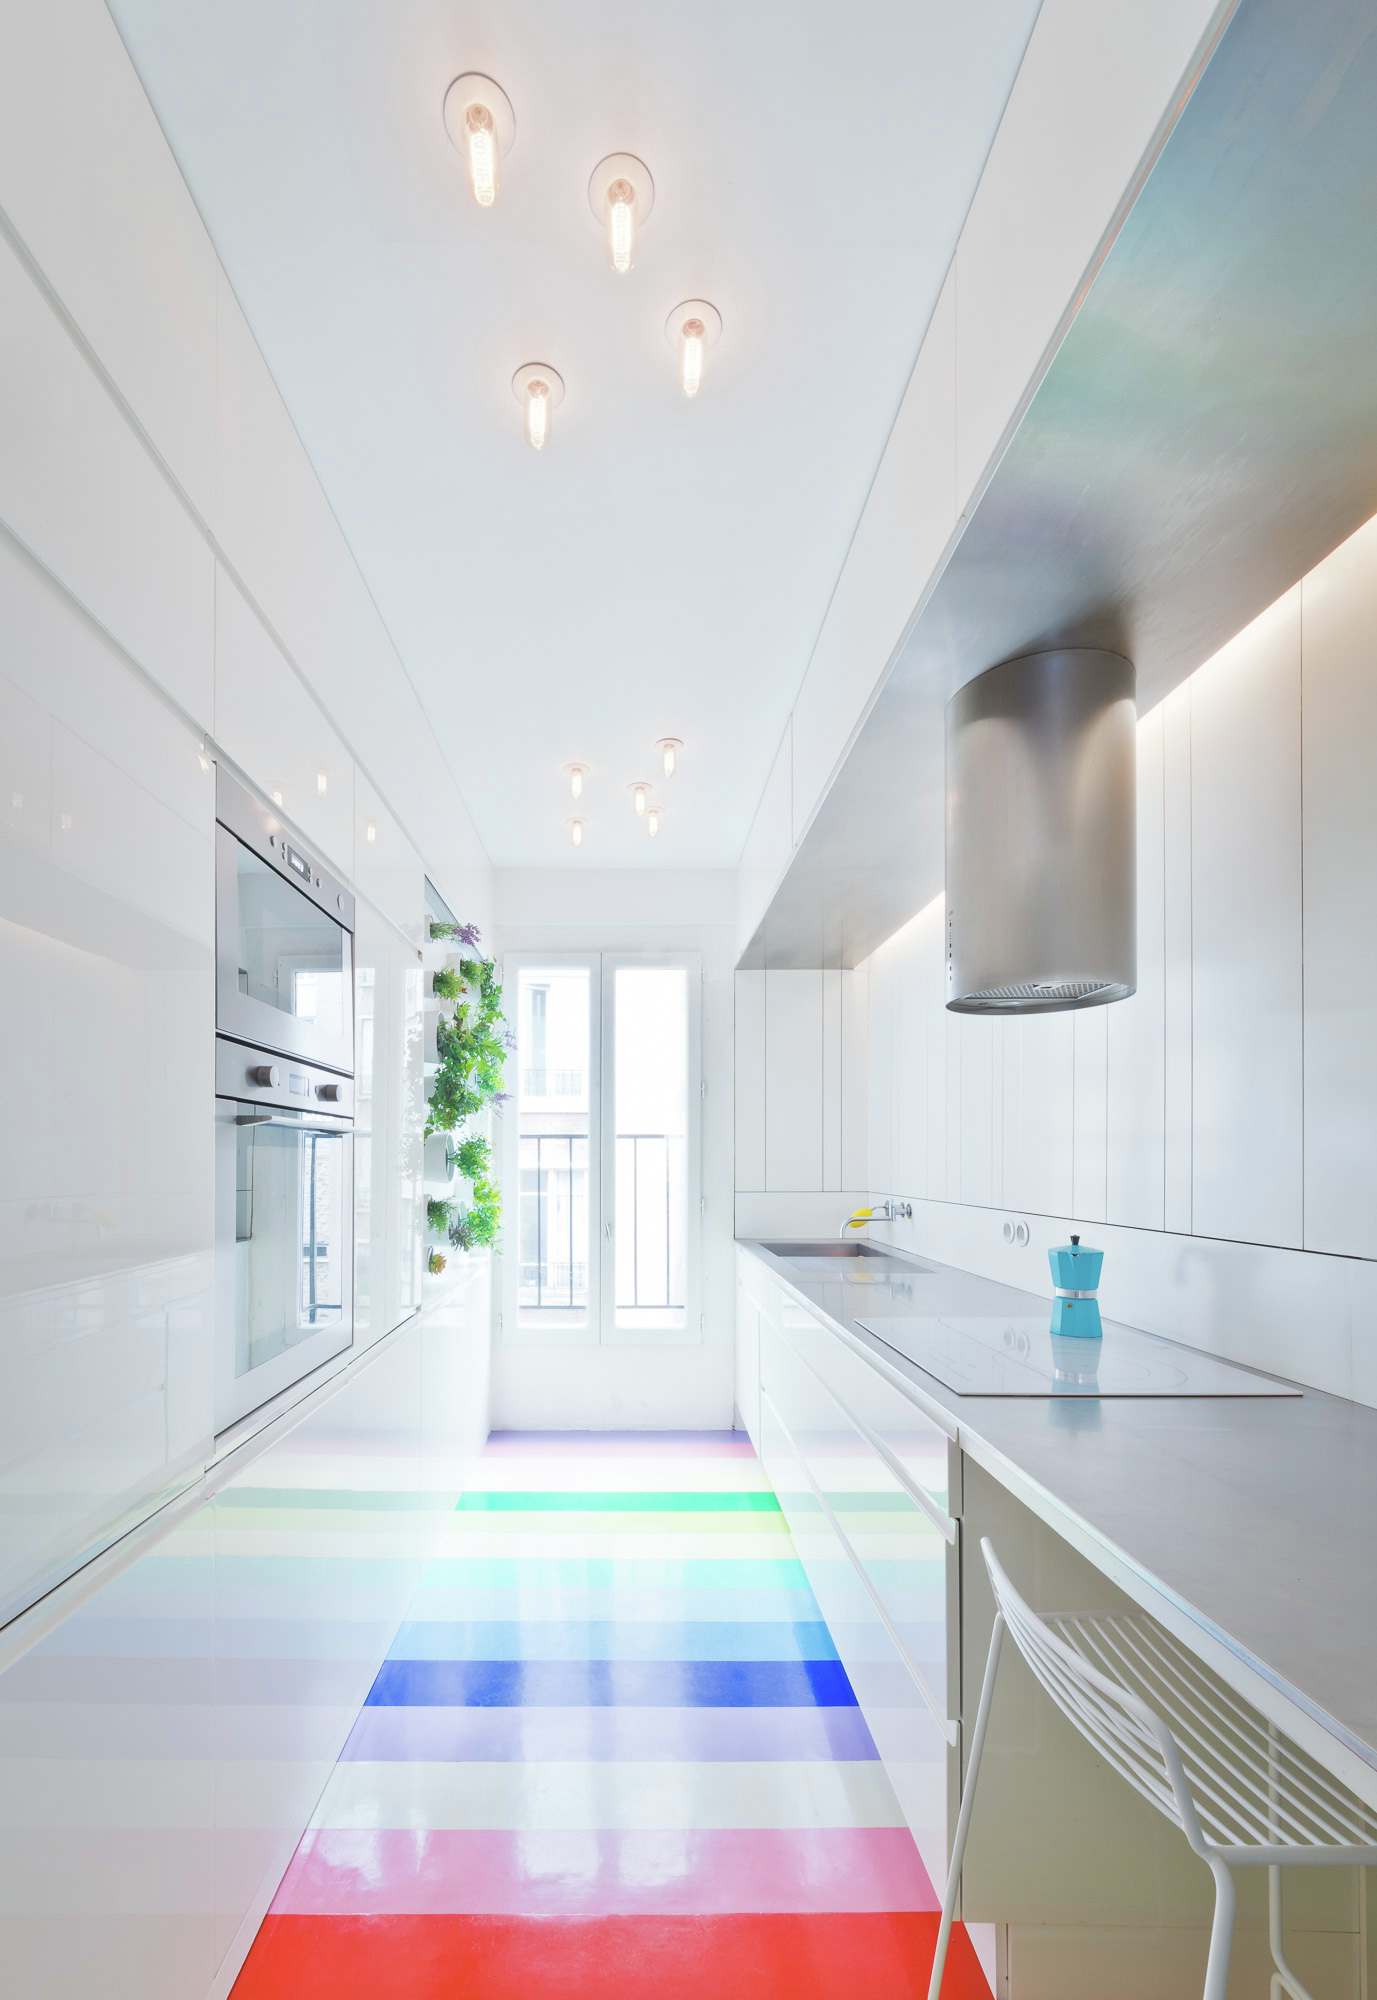 Redesigned Paris apartment kitchen floor